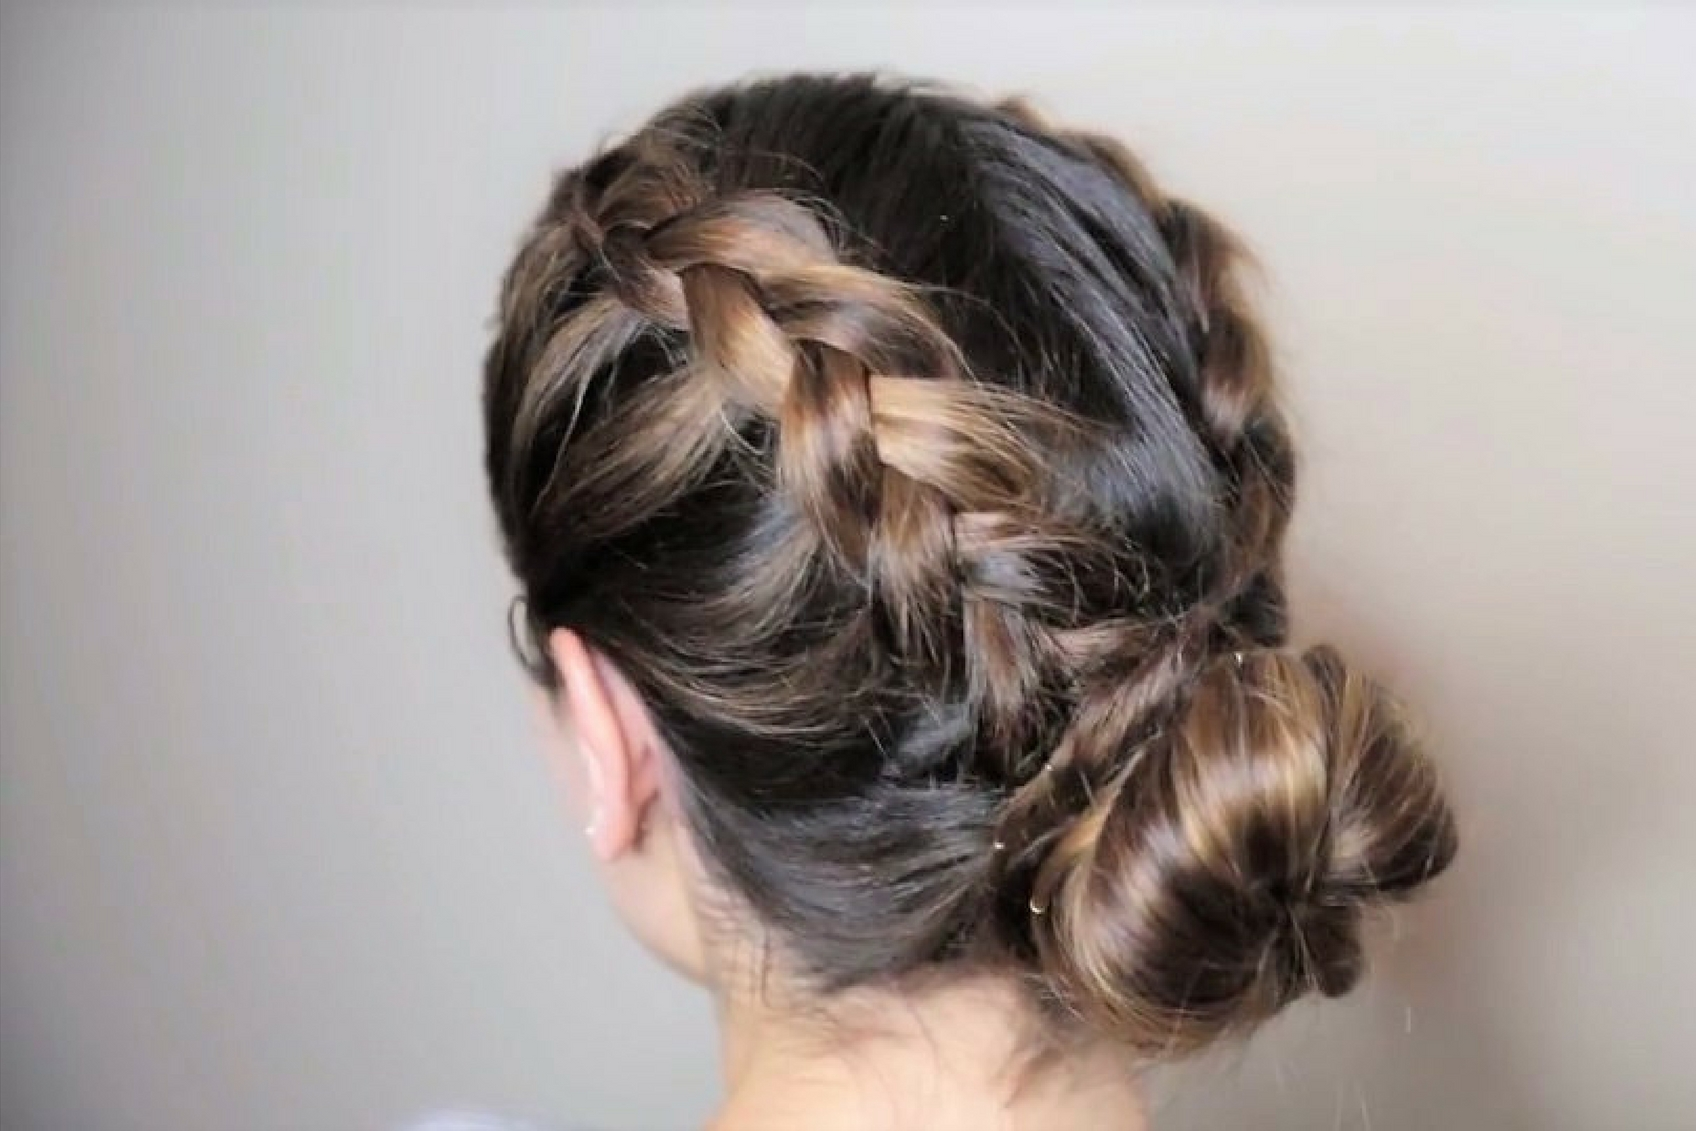 How To Style French Braids In A Messy Bun – Metiza In Preferred Messy Bun With French Braids (View 8 of 15)